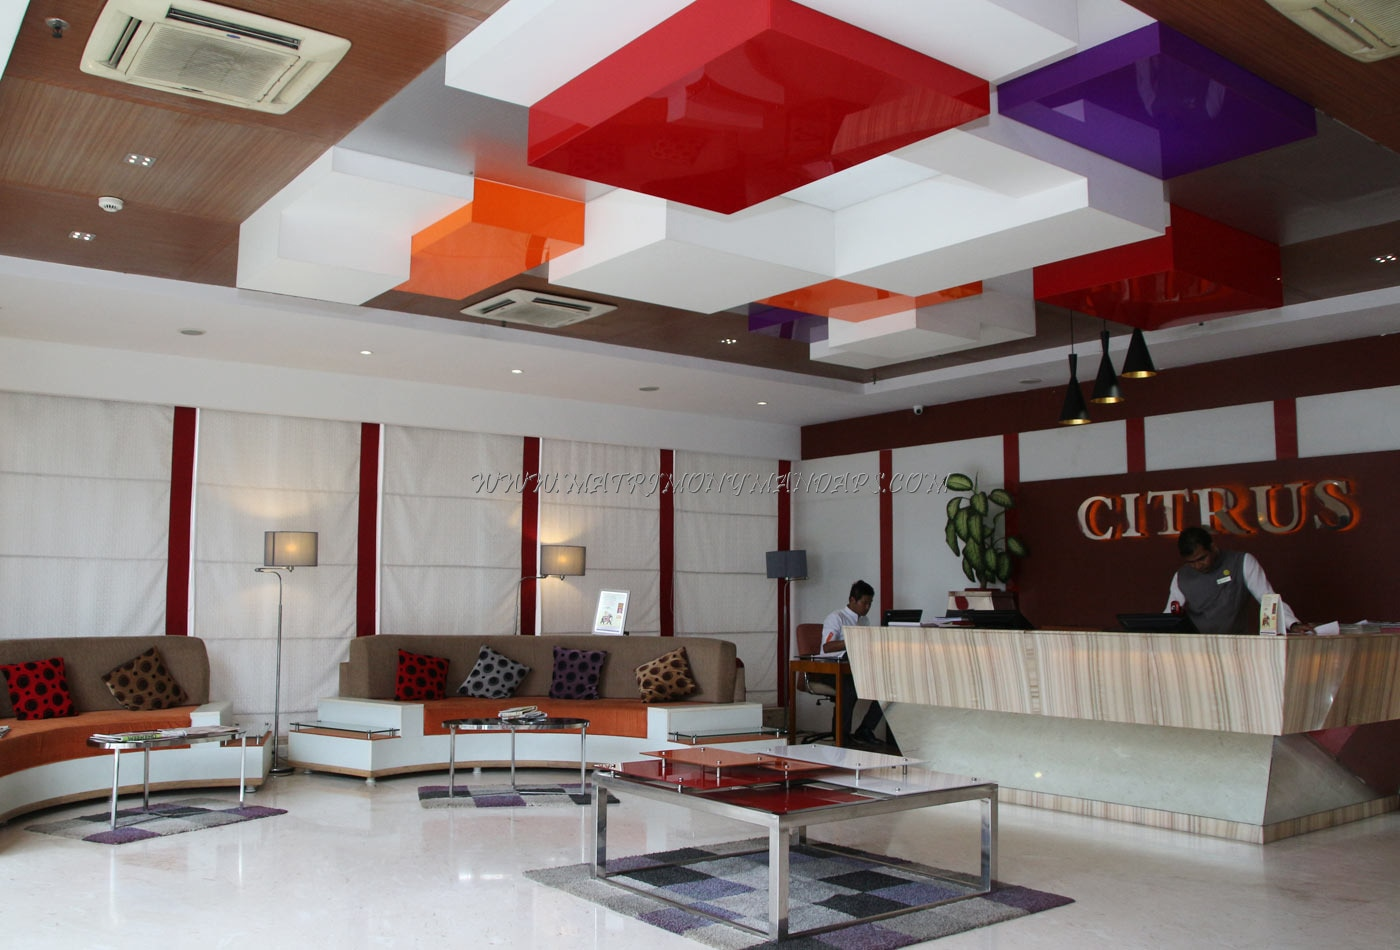 Find the availability of the Citrus Hotel (A/C) in Marathahalli, Bangalore and avail special offers